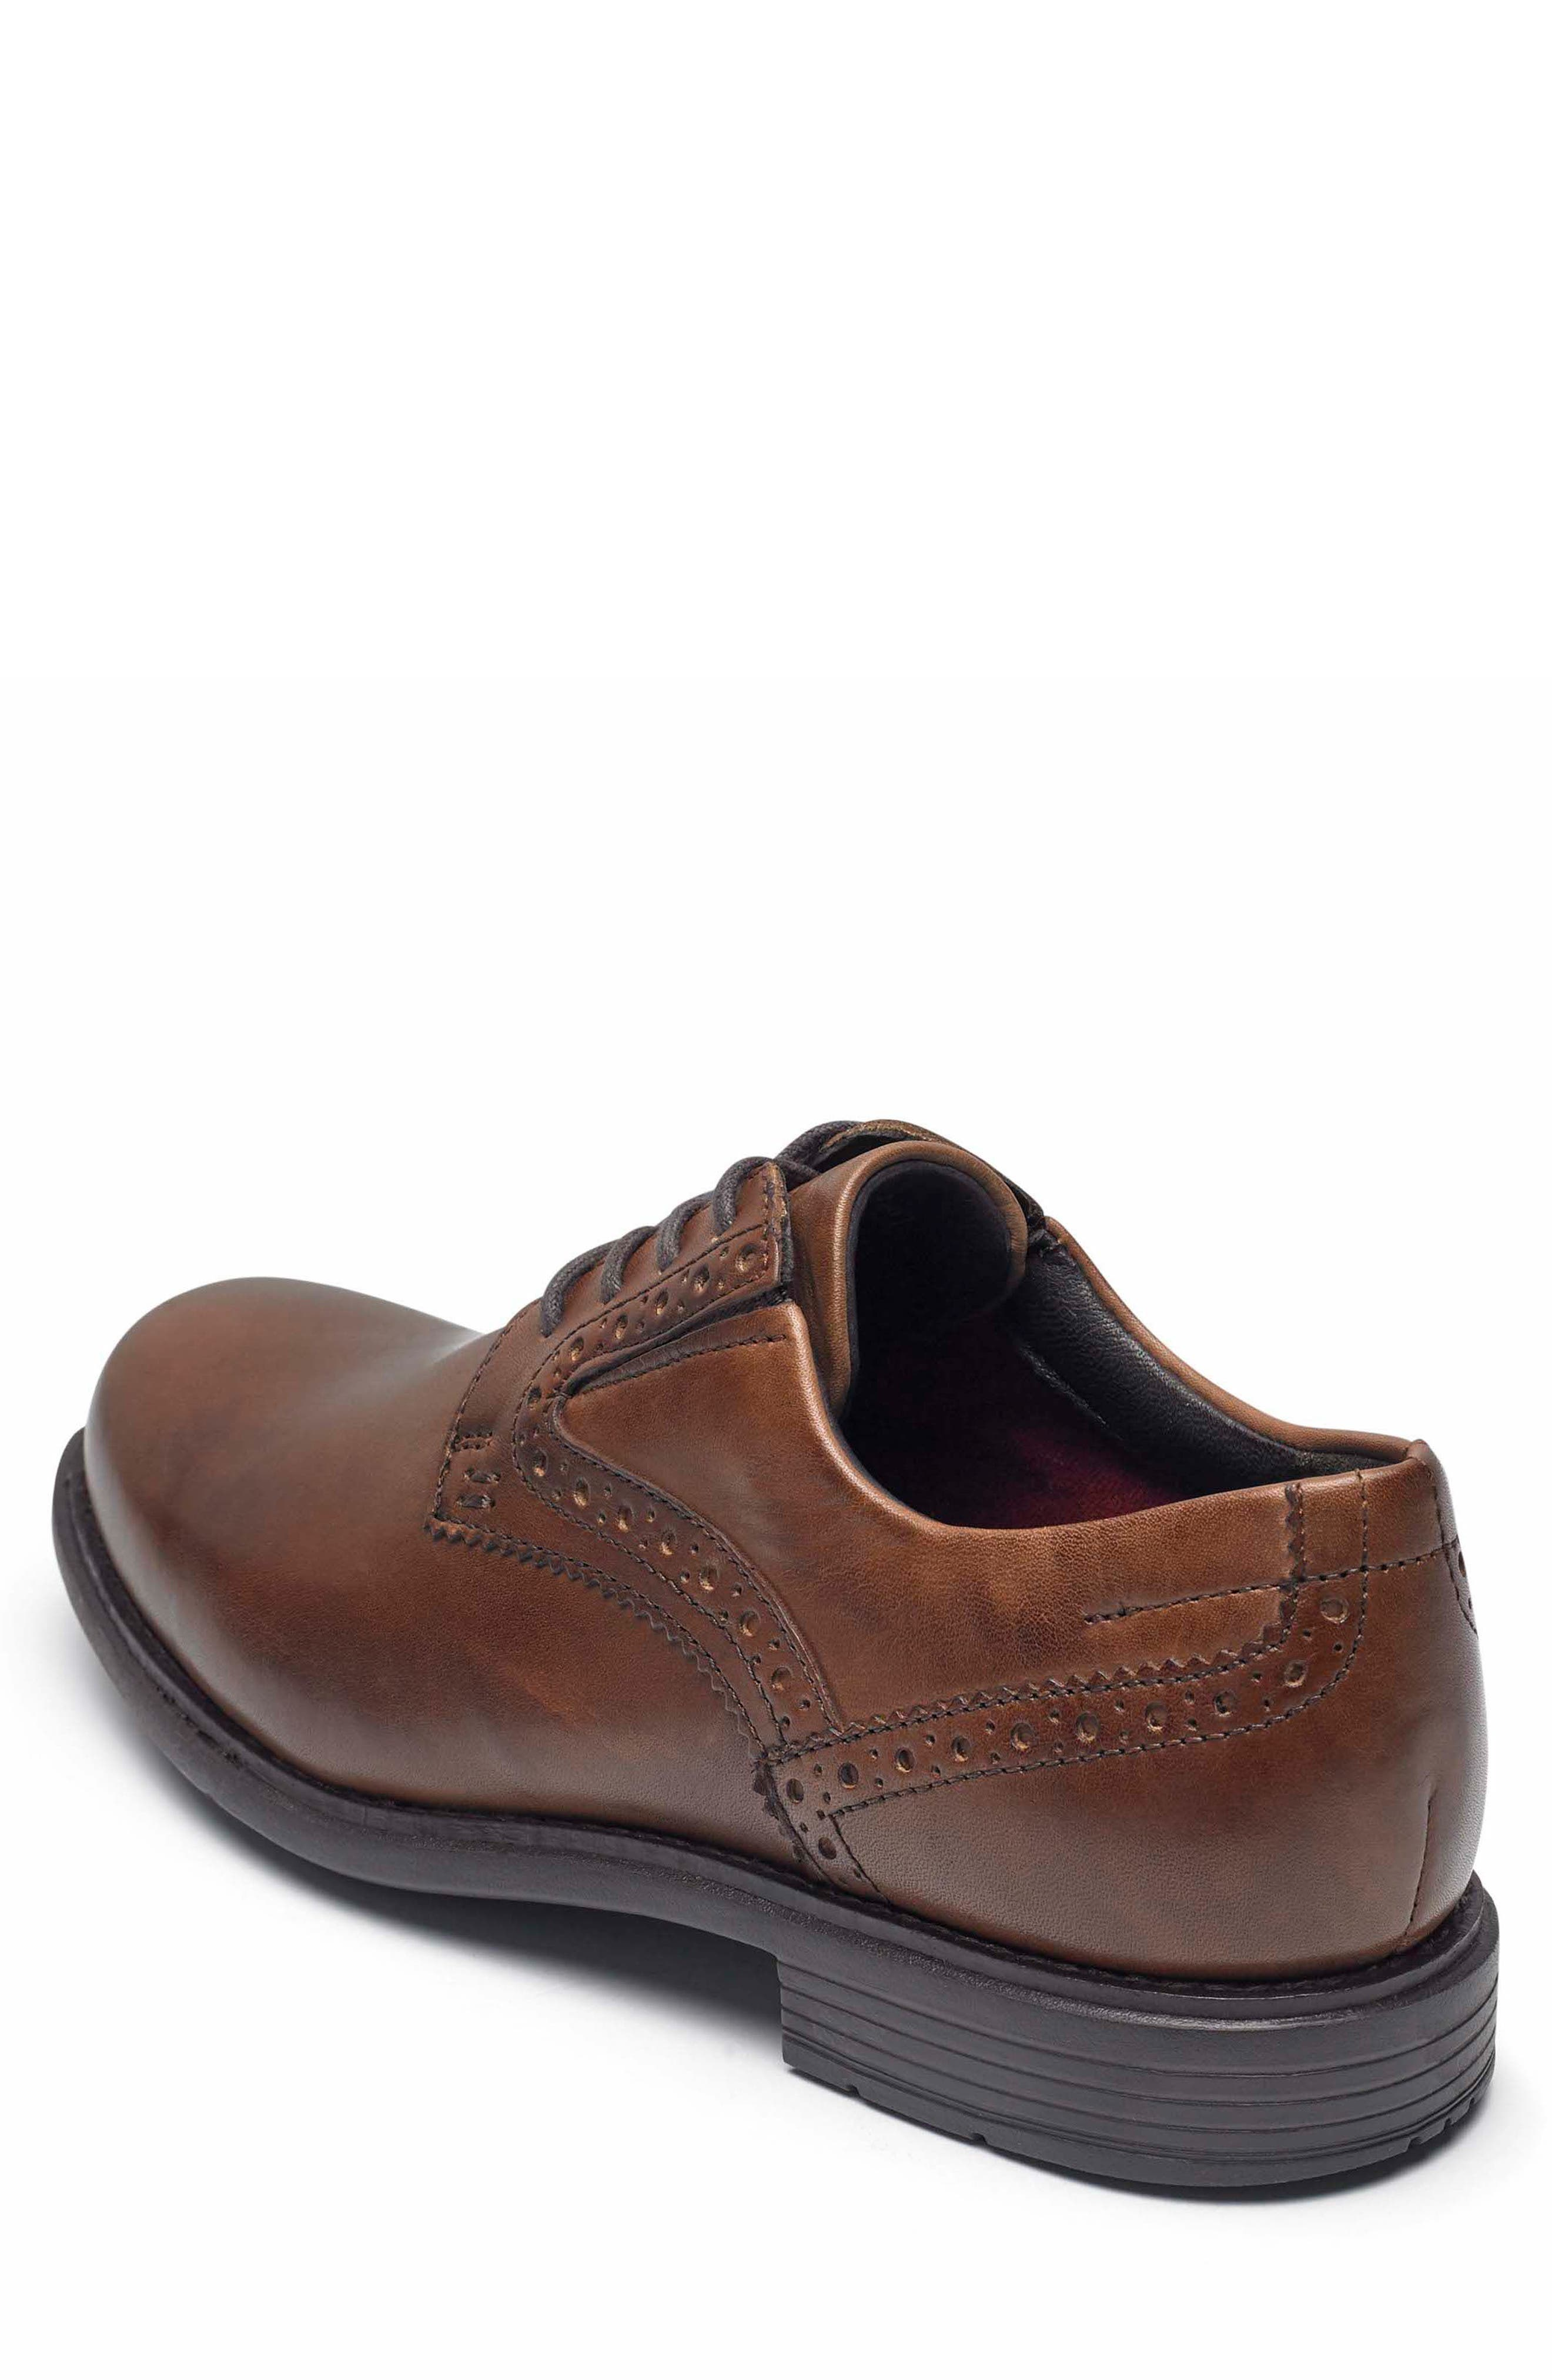 Total Motion Classic Plain Toe Derby,                             Alternate thumbnail 2, color,                             NEW BROWN LEATHER